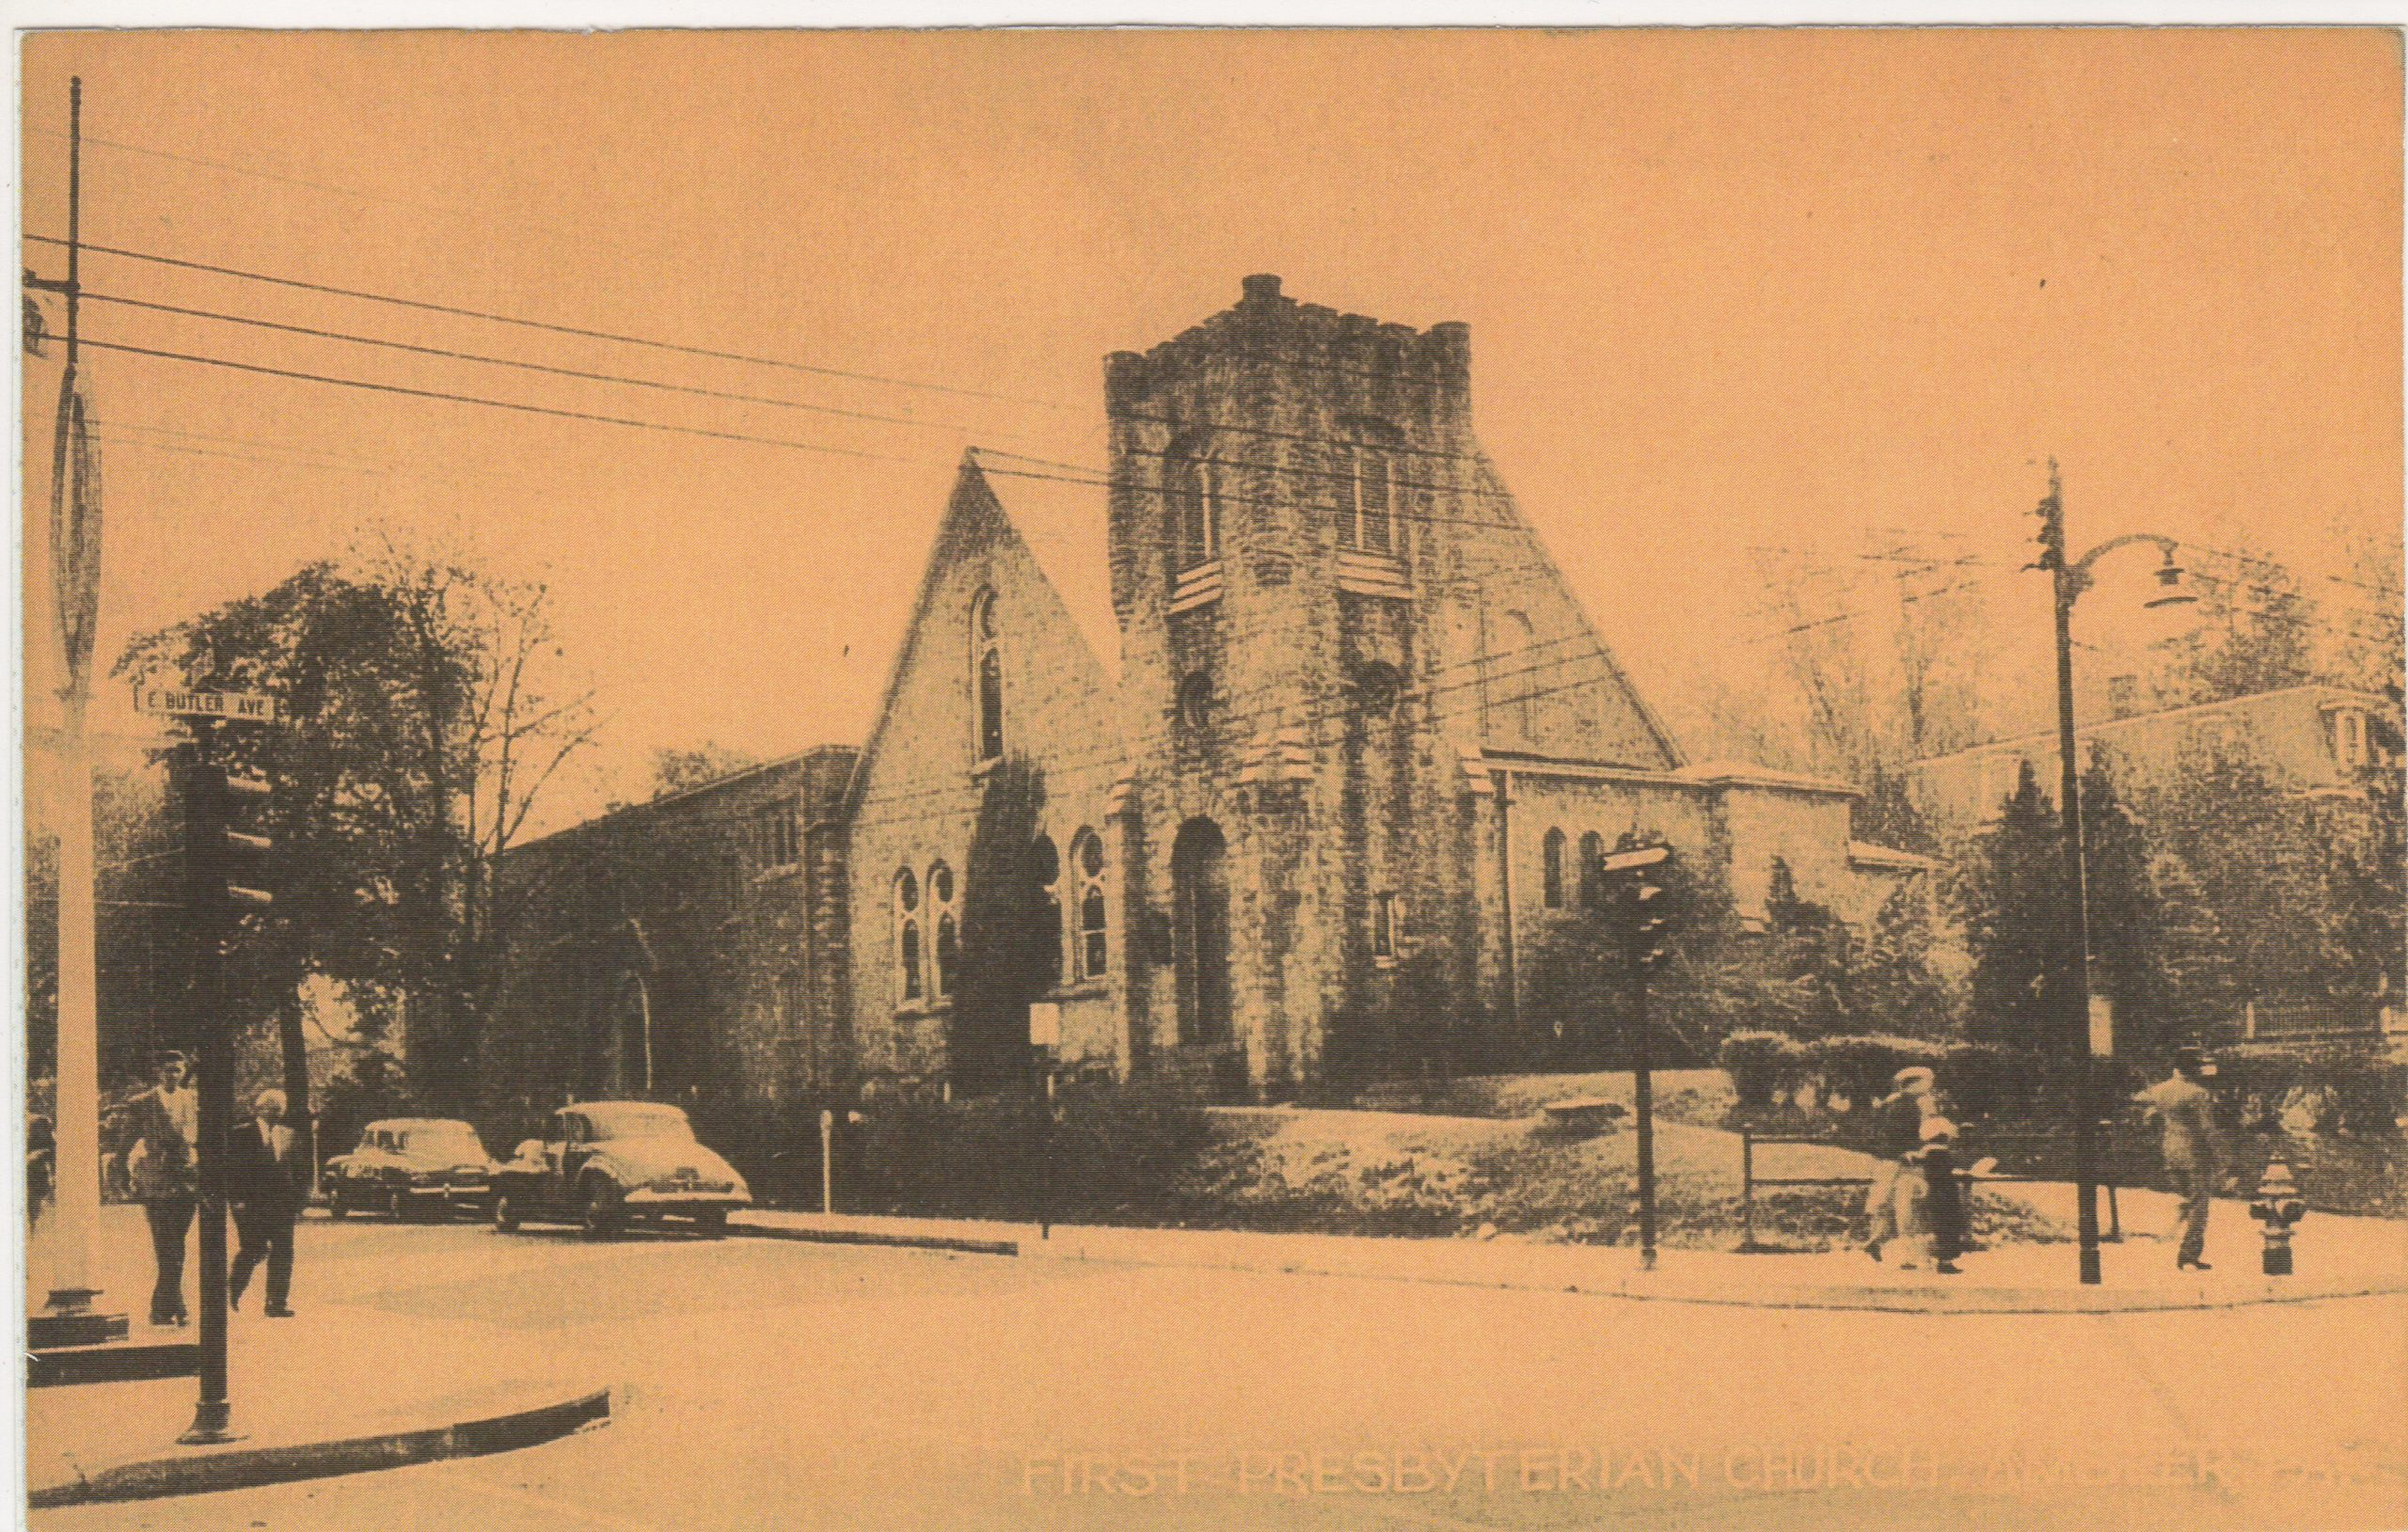 4125.18 Ambler Pa Postcard_First Presbyterian Church_circa 1952